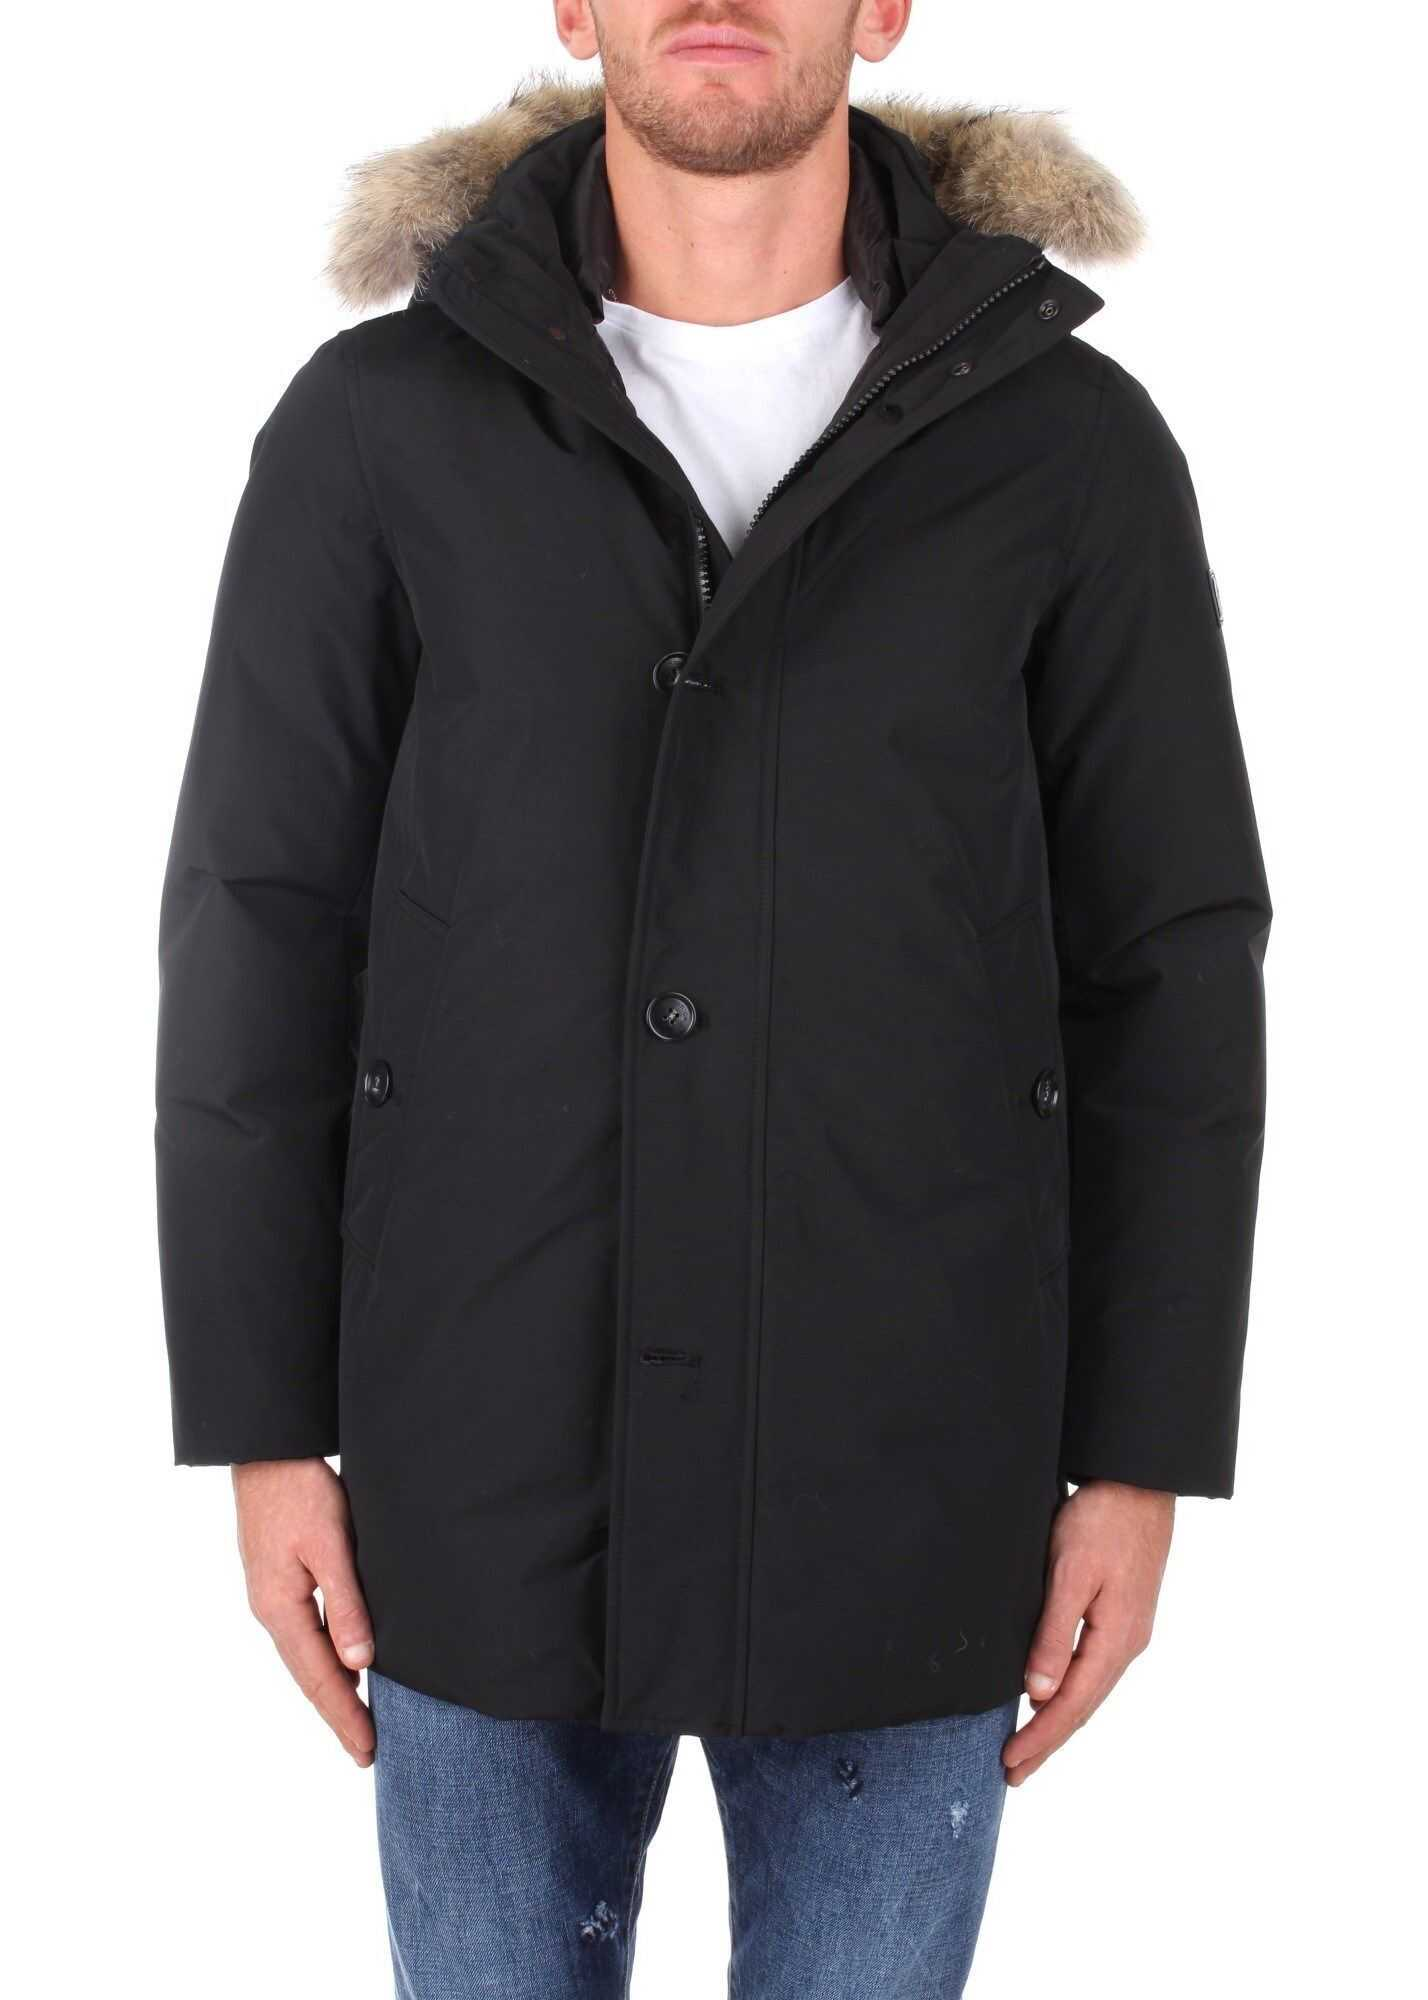 Woolrich Cotton Outerwear Jacket BLACK